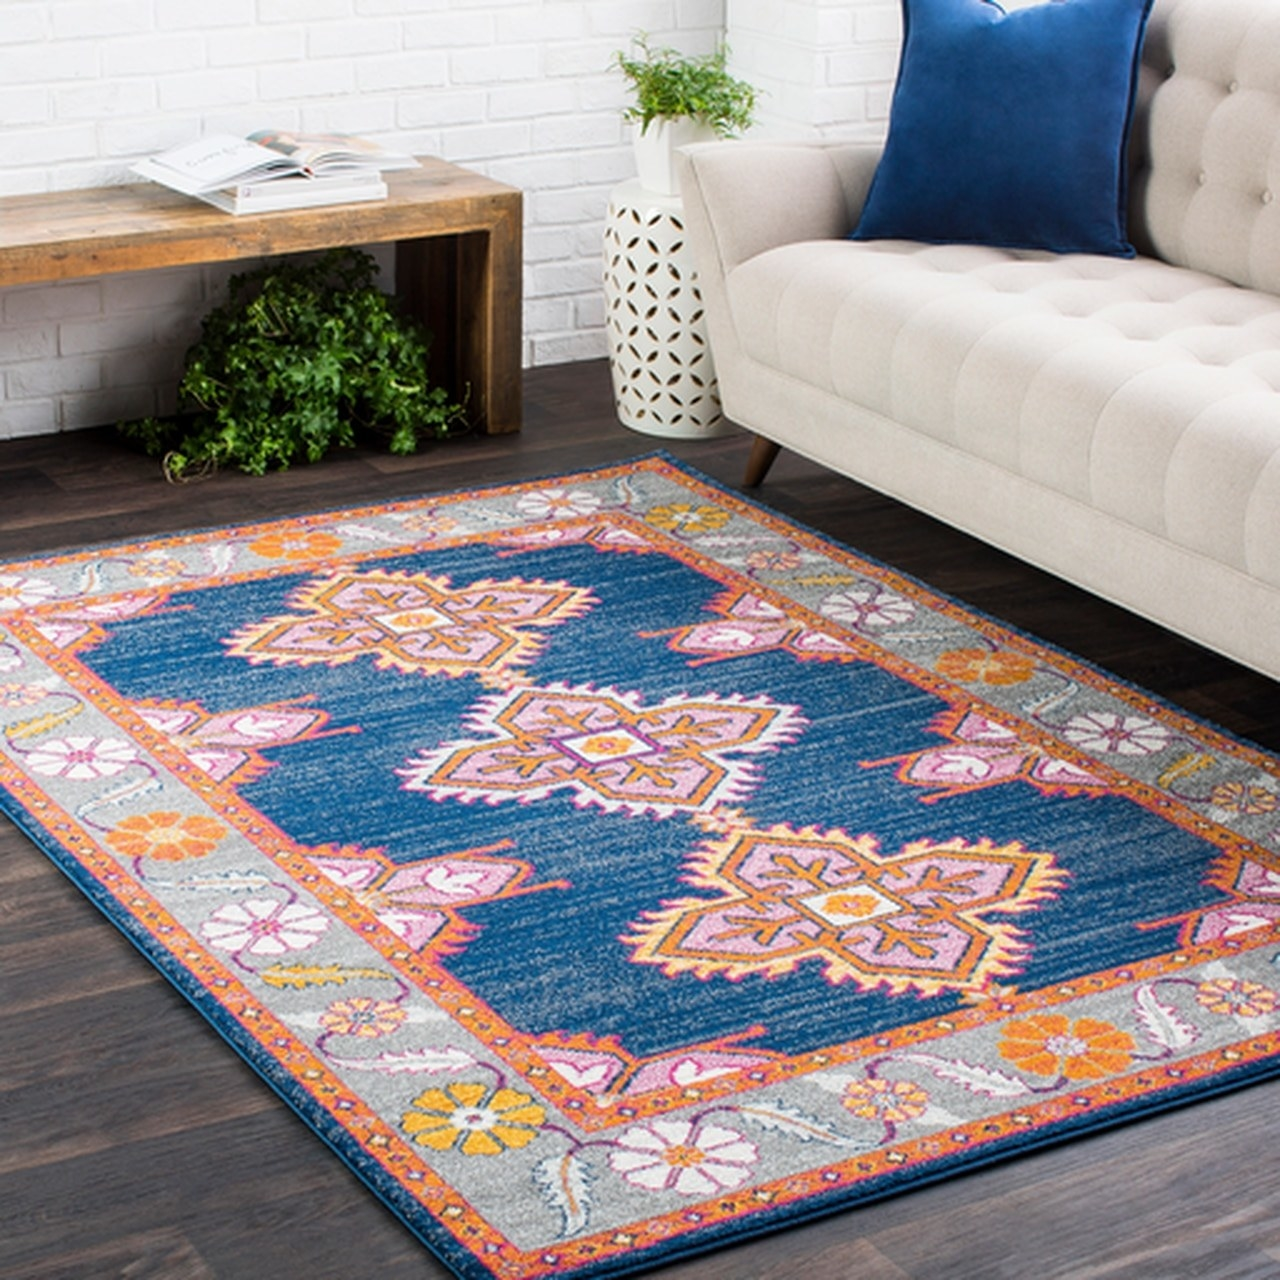 blue, great, pink and yellow floral and geometric patterned rug